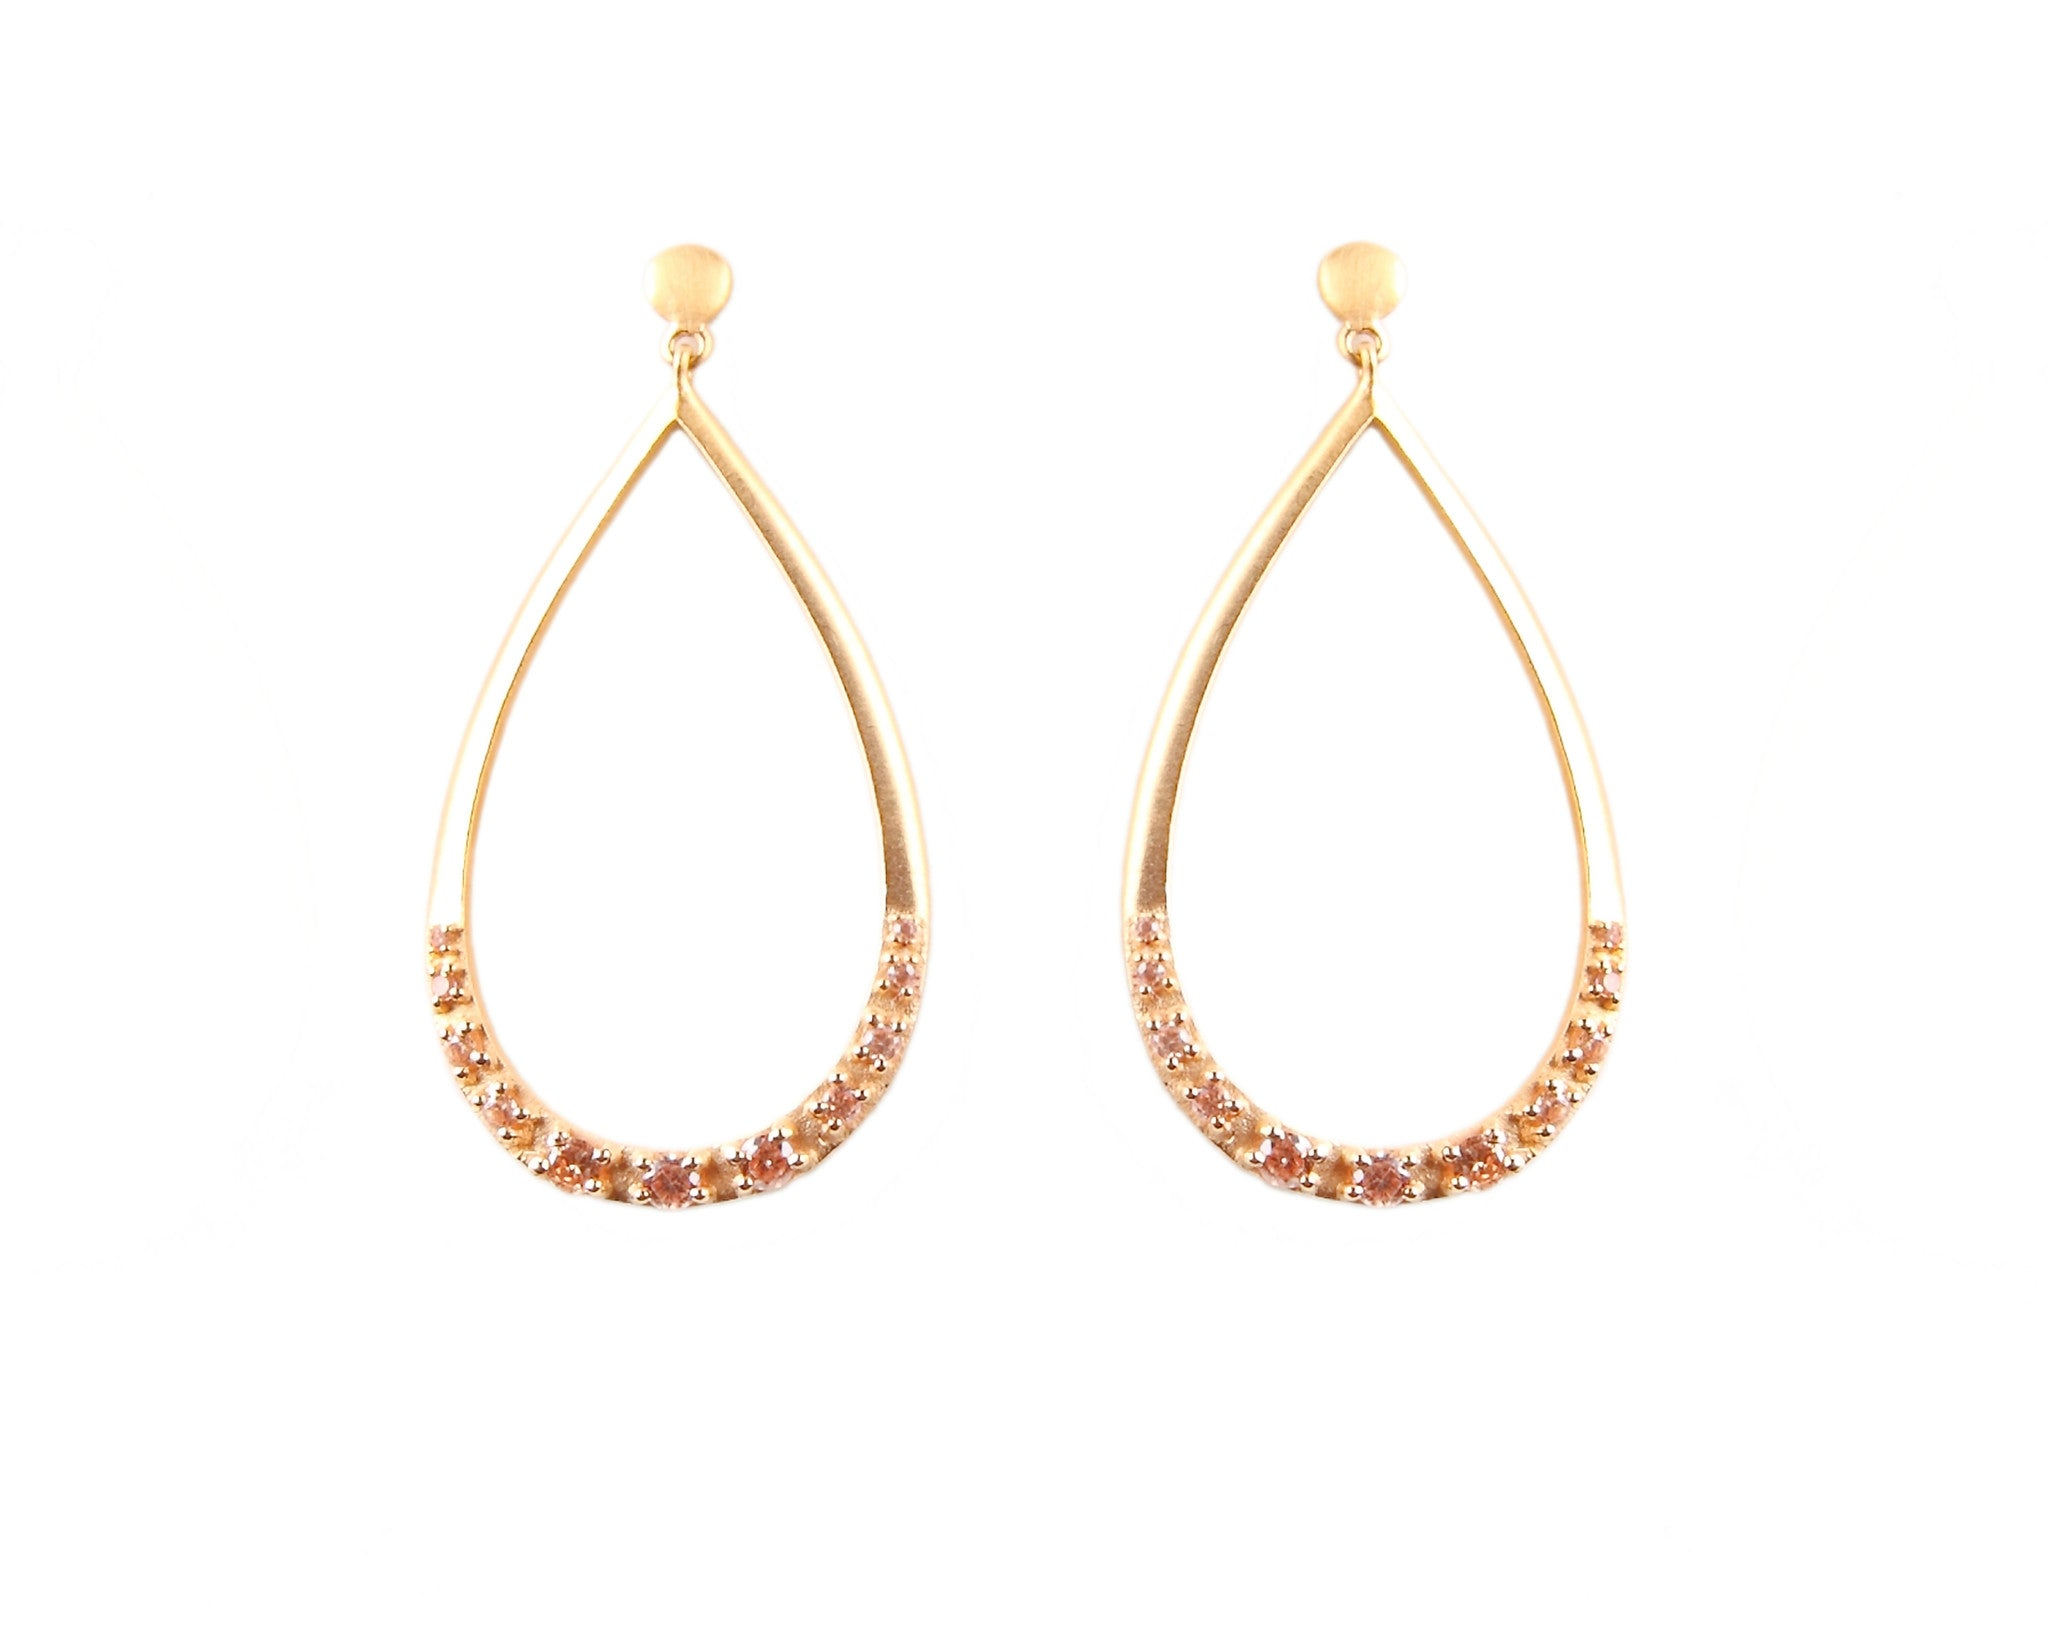 Small Open Raindrop Gold Plated Earrings with Yellow Citrine stones